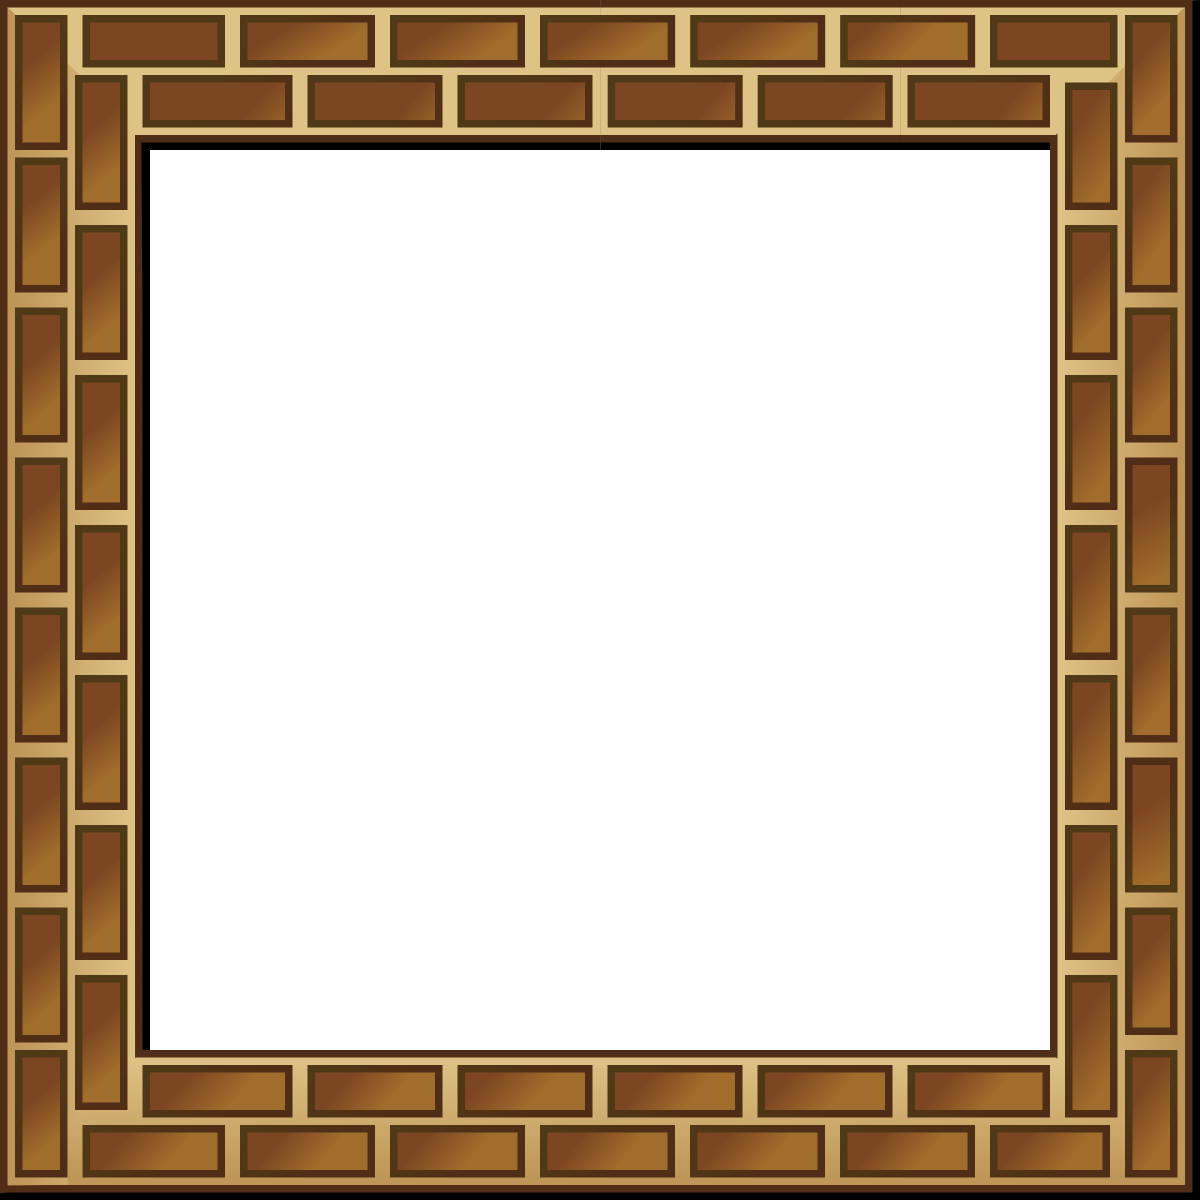 Brown bricks frame border